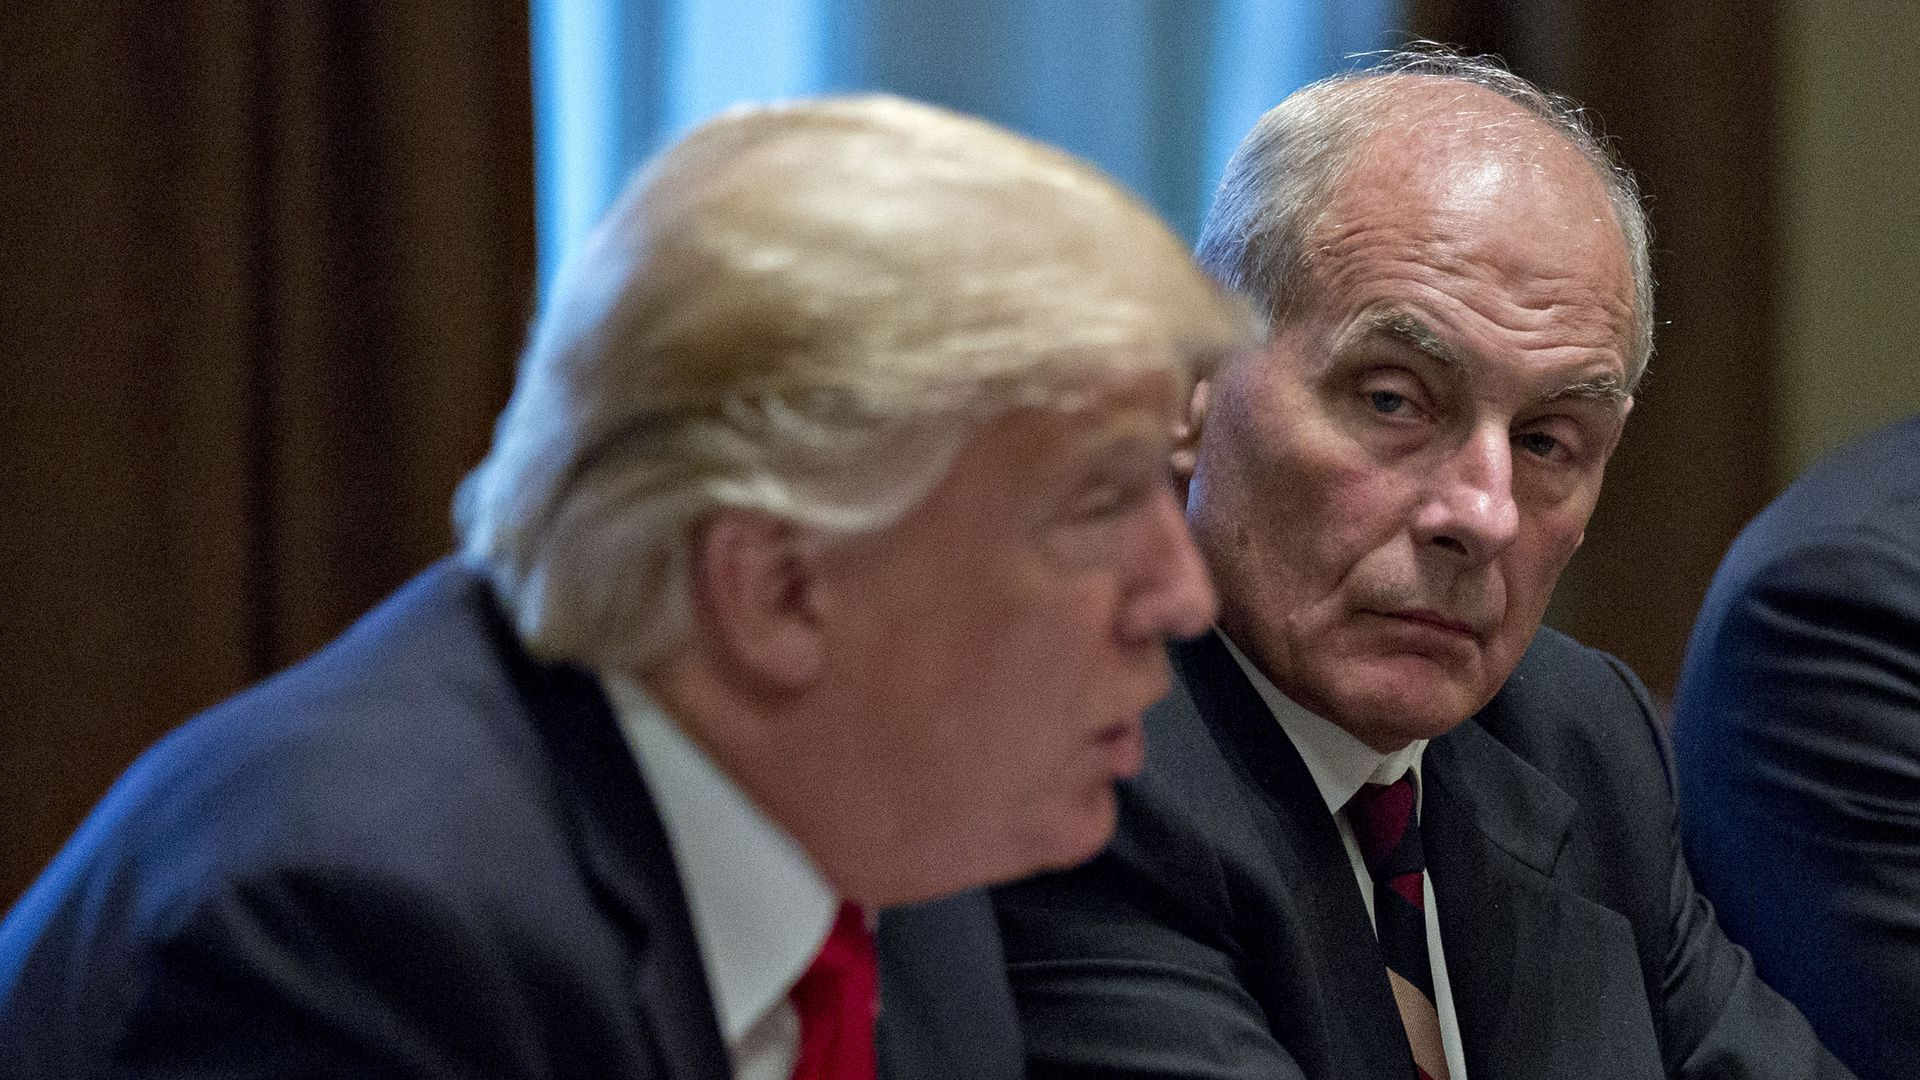 John Kelly and Trump